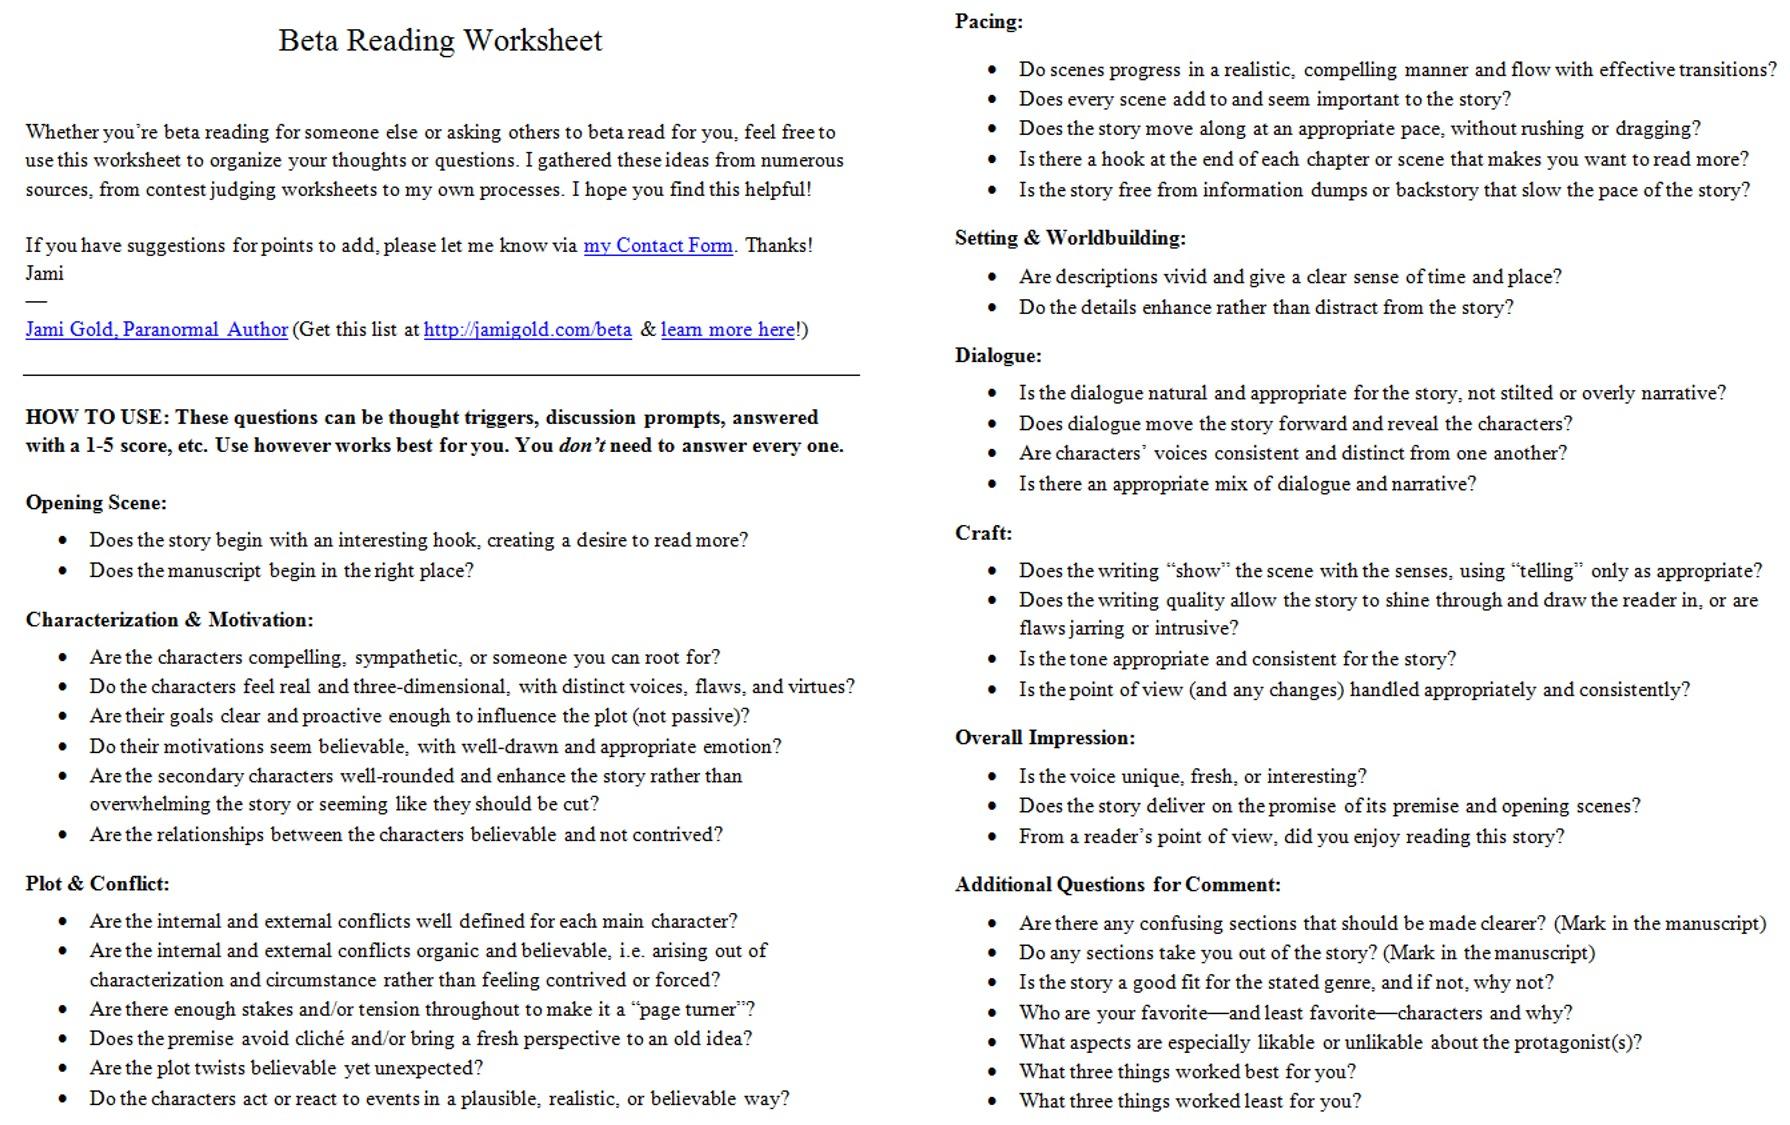 Weirdmailus  Fascinating Worksheets For Writers  Jami Gold Paranormal Author With Luxury Screen Shot Of The Twopage Beta Reading Worksheet With Adorable Tree Ring Worksheet Also Number Problems Worksheets In Addition Grammar Worksheets Printable And Learning To Write Letters Worksheets As Well As Animal Habitat Worksheets For Kindergarten Additionally Trig Worksheets With Answers From Jamigoldcom With Weirdmailus  Luxury Worksheets For Writers  Jami Gold Paranormal Author With Adorable Screen Shot Of The Twopage Beta Reading Worksheet And Fascinating Tree Ring Worksheet Also Number Problems Worksheets In Addition Grammar Worksheets Printable From Jamigoldcom